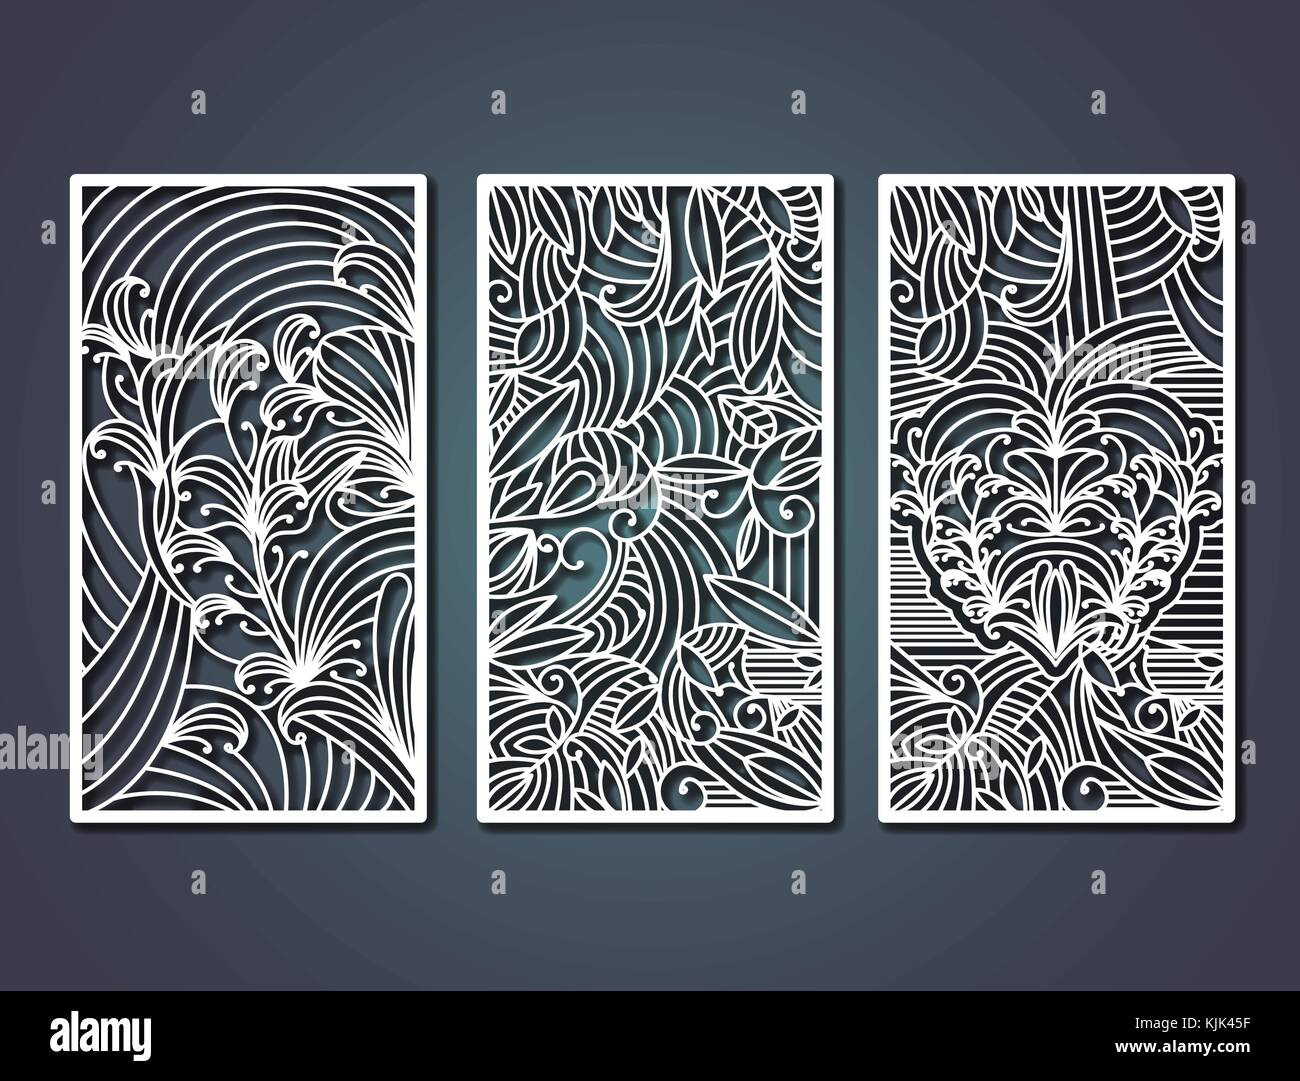 a31cdb73511e laser cutting rectangular frames with decorative floral forms in steel blue  color background - Stock Vector